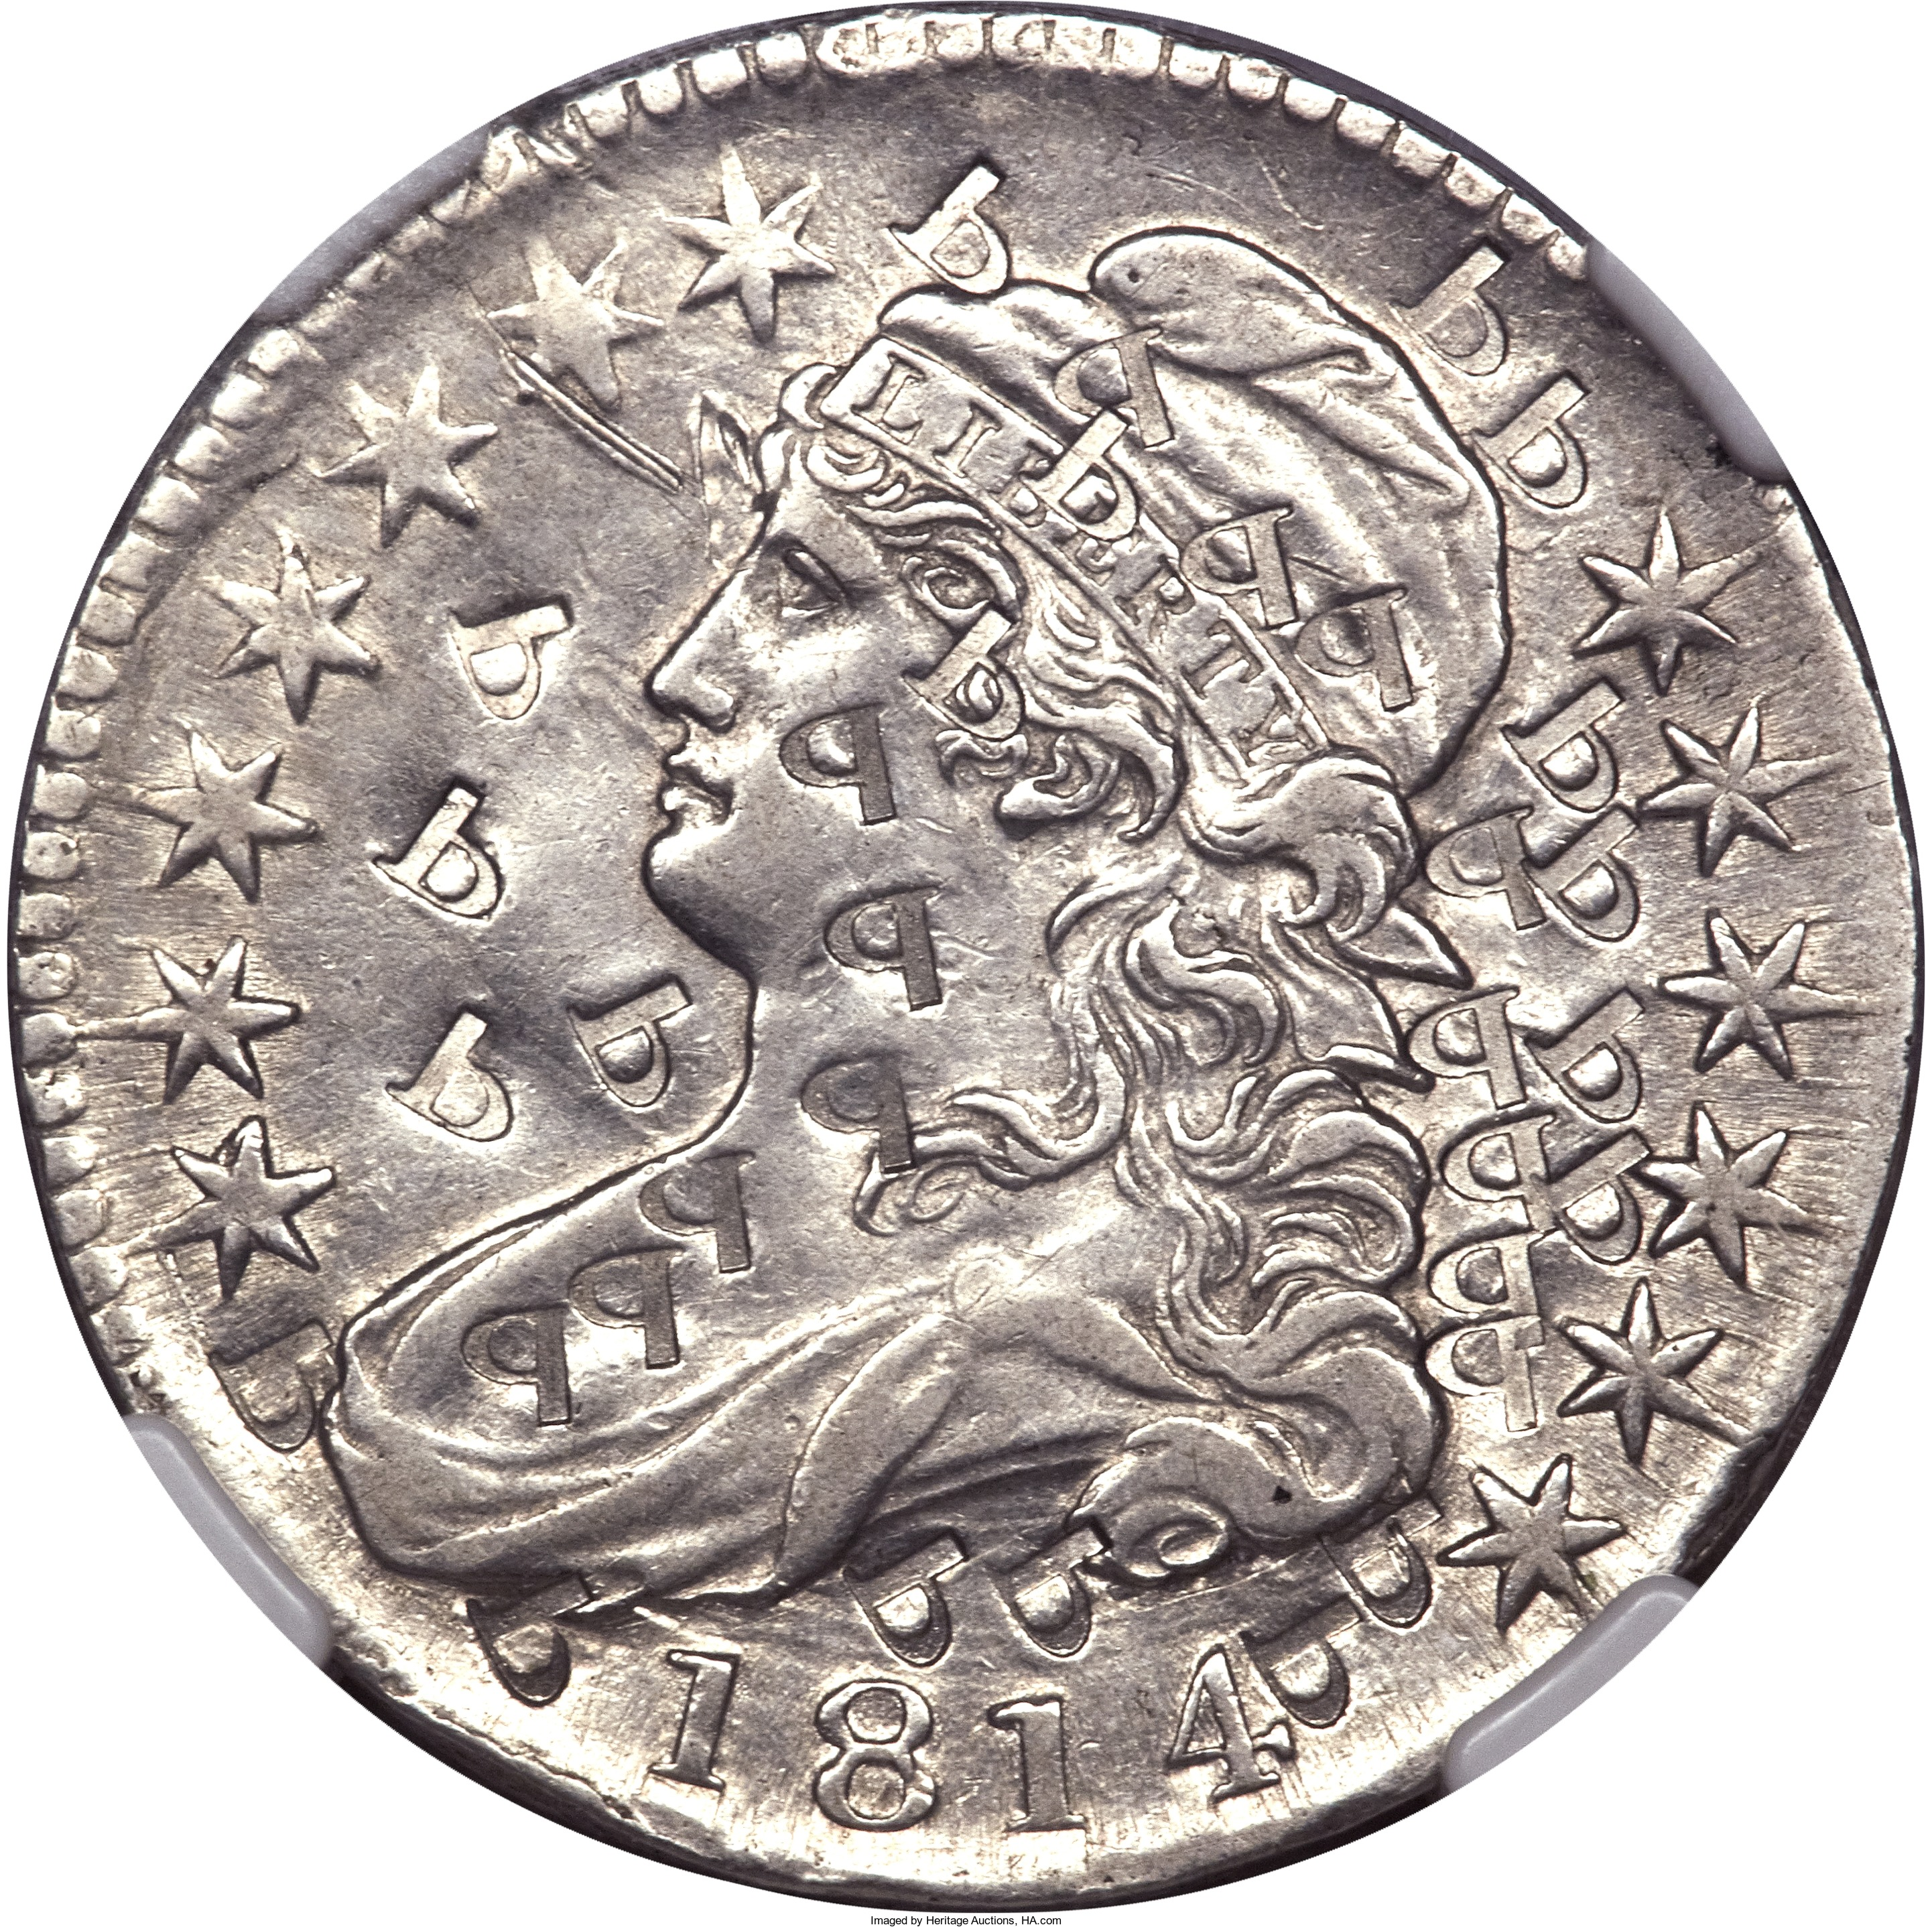 This 1814 half dollar, with the letter P punched into the obverse 33 times, was struck in platinum and weighs close to twice as much as the regular-issue silver coin. It sold for $138,000 in 2011.